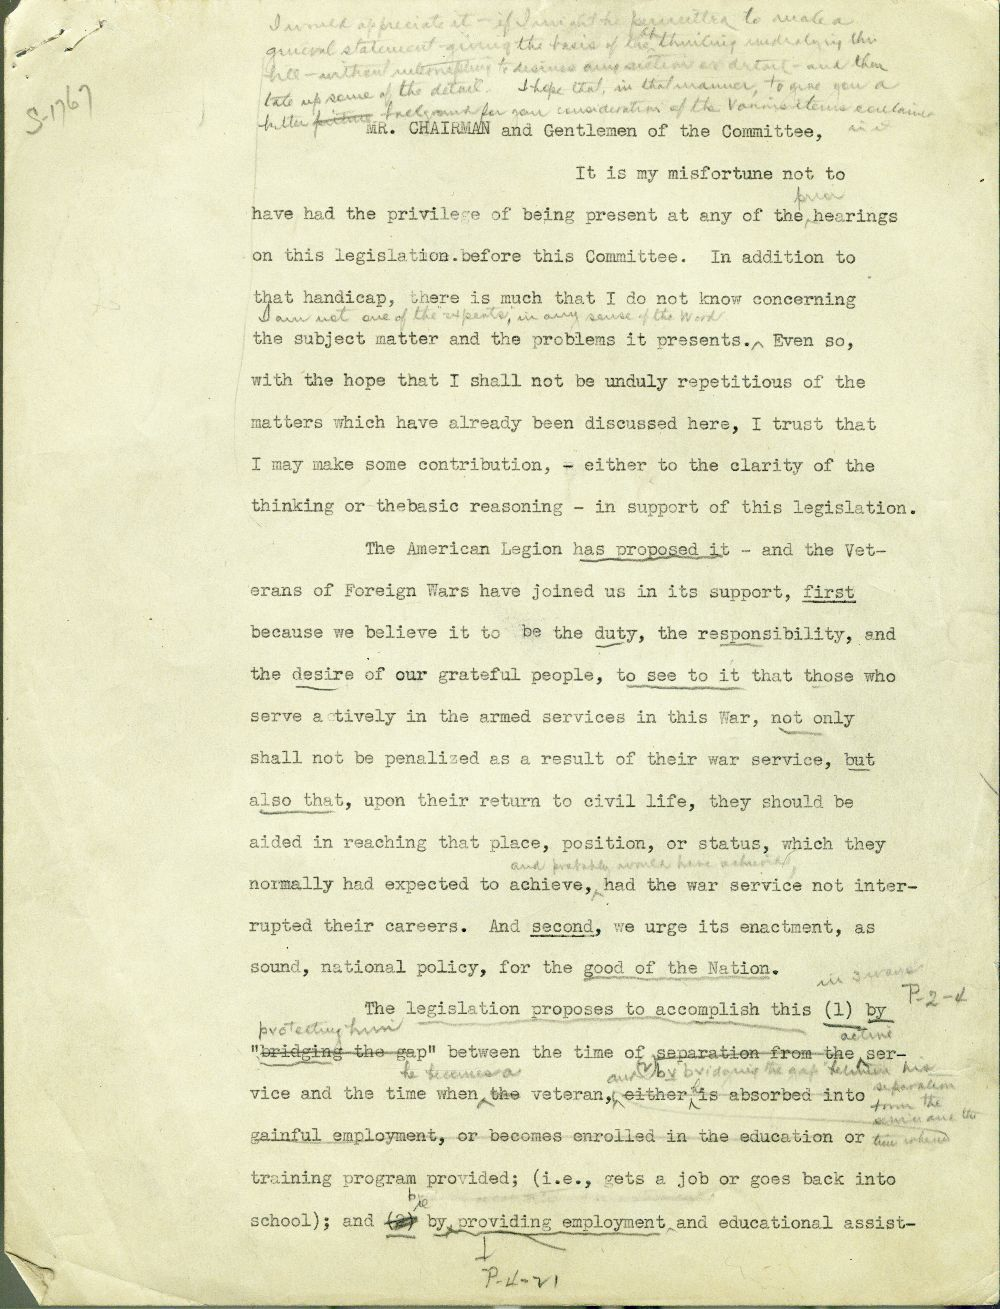 Testimony concerning the G. I. Bill of Rights presented by Harry W. Colmery - 1